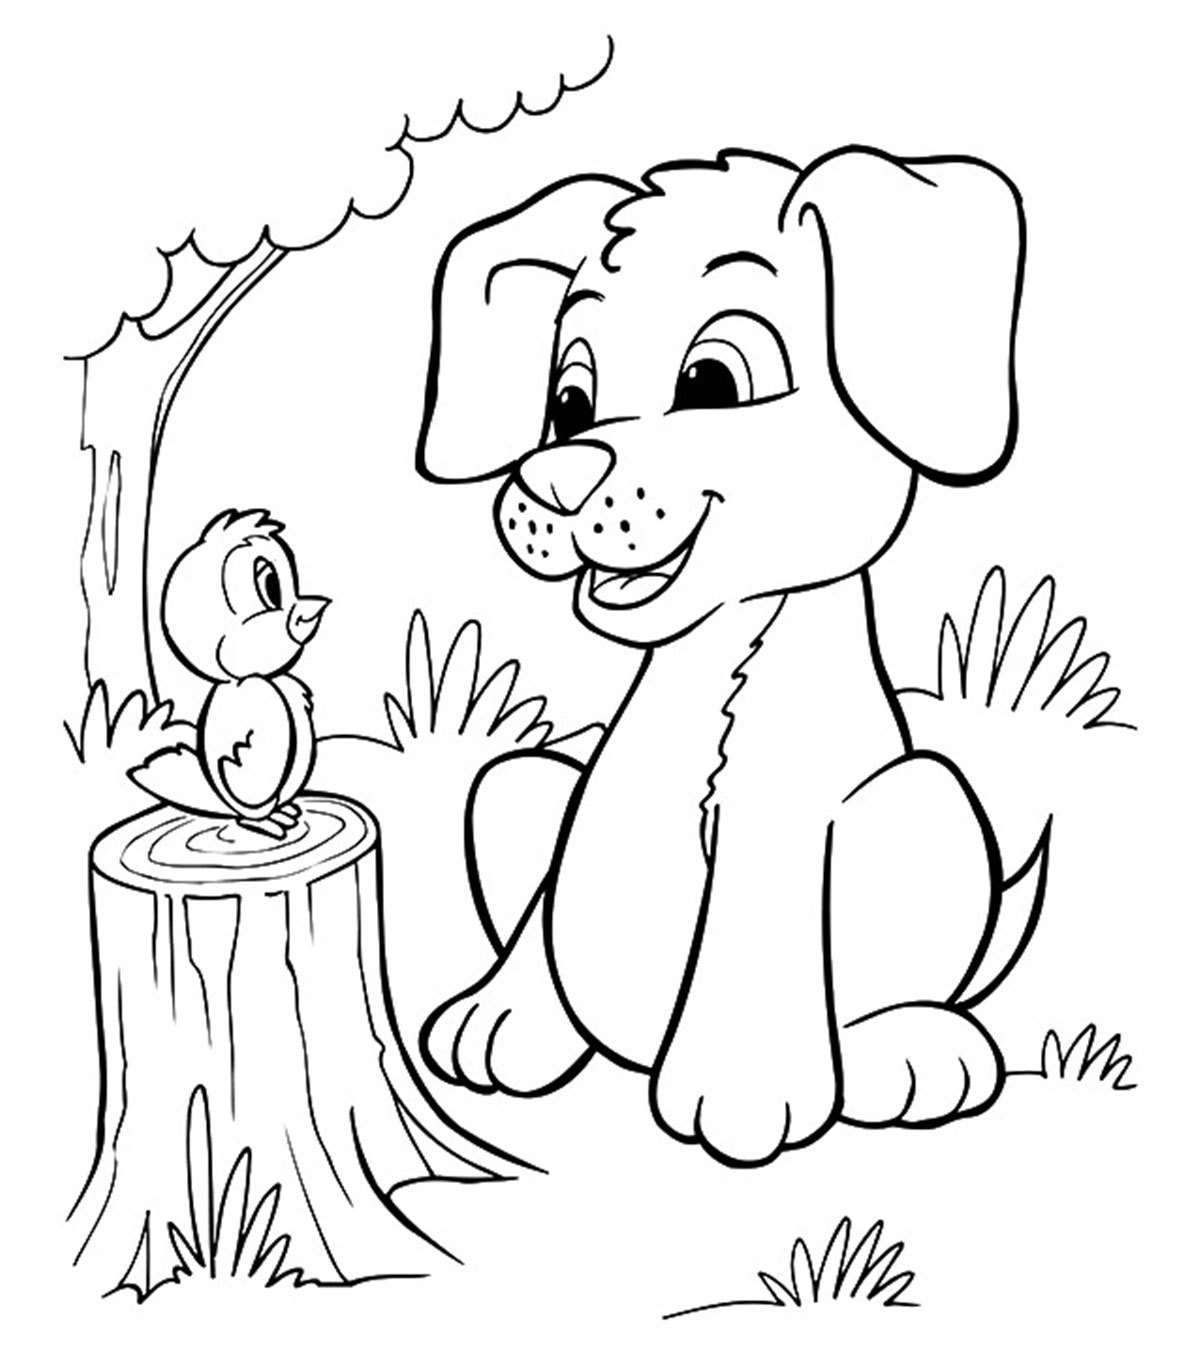 Cupcake with candle clipart coloring pages space for name svg transparent stock Top 30 Free Printable Puppy Coloring Pages Online svg transparent stock